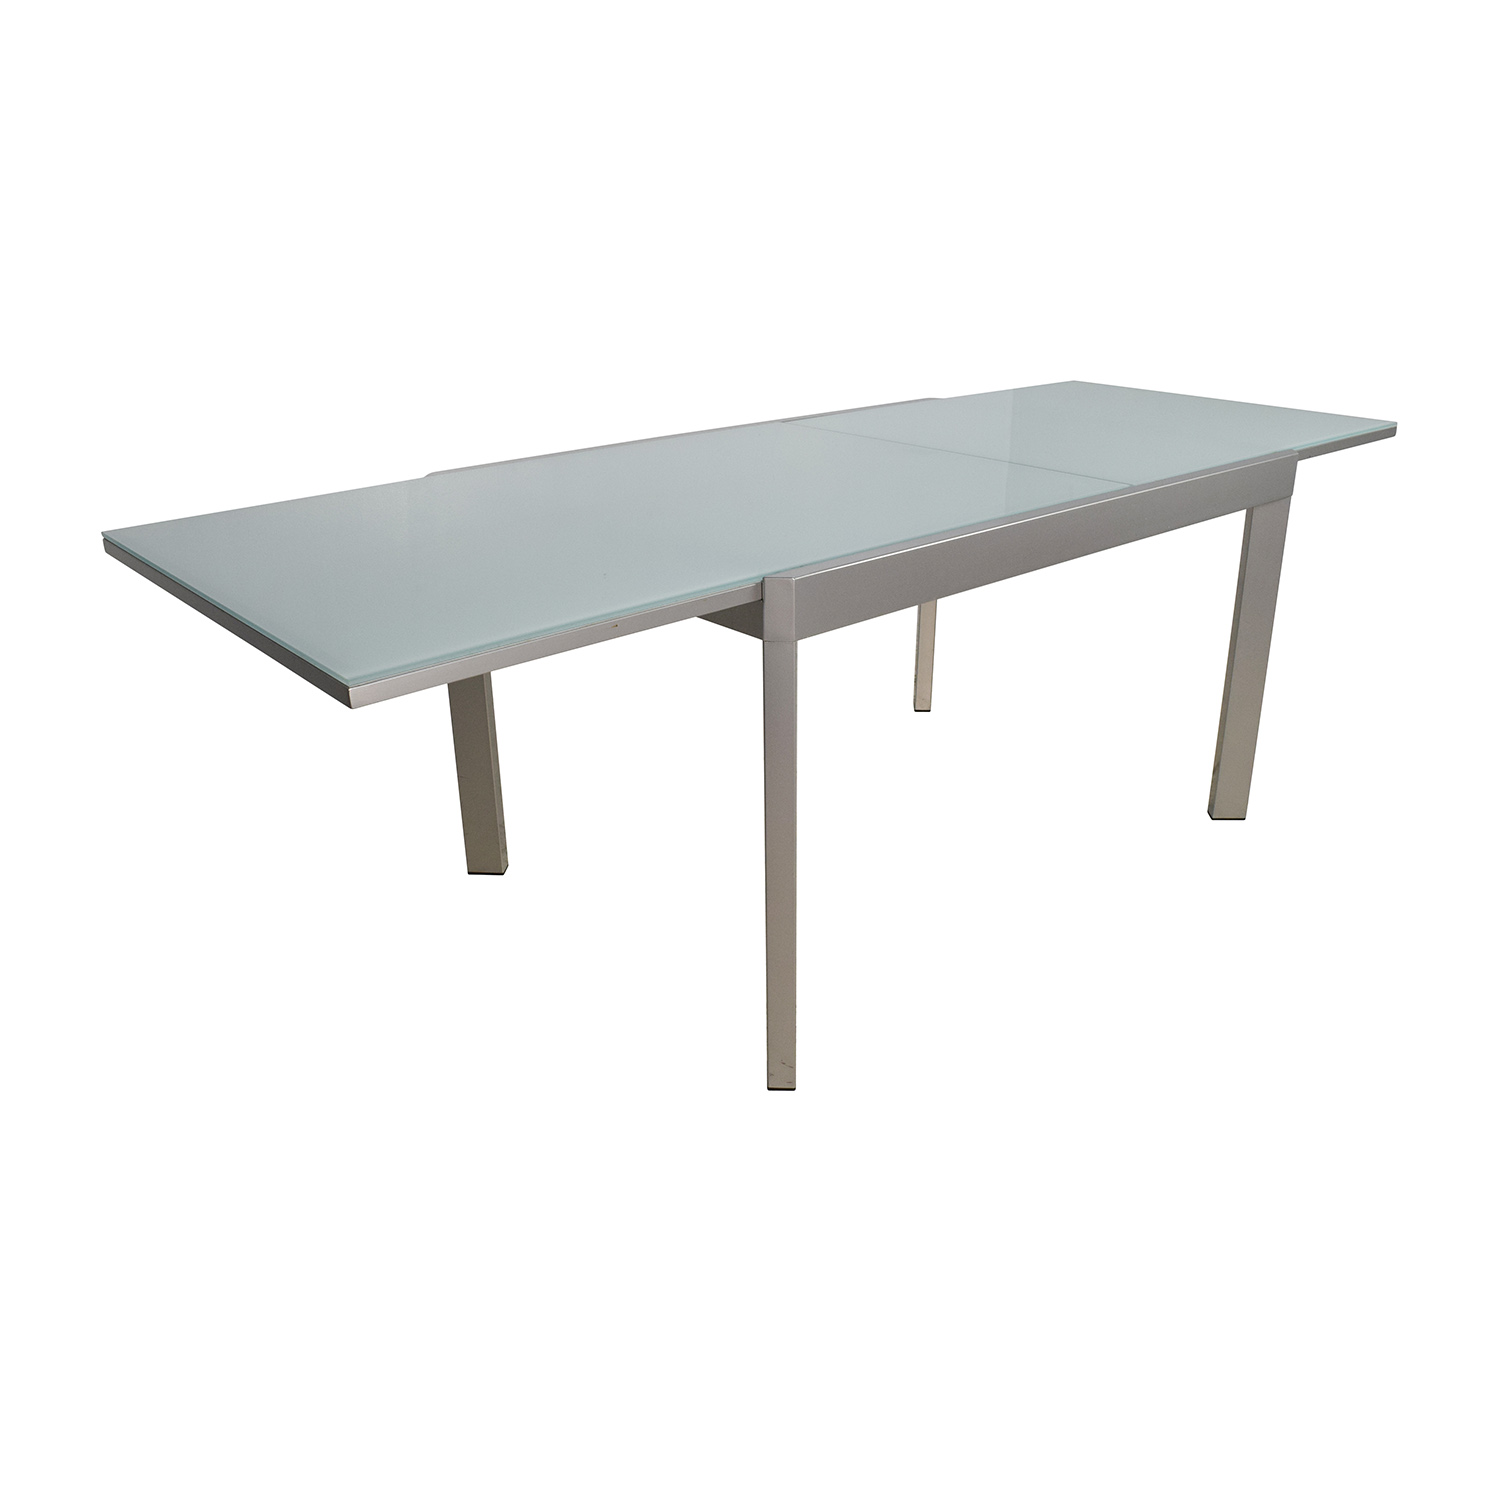 86 off calligaris calligaris extendable glass dining for Glass dining table